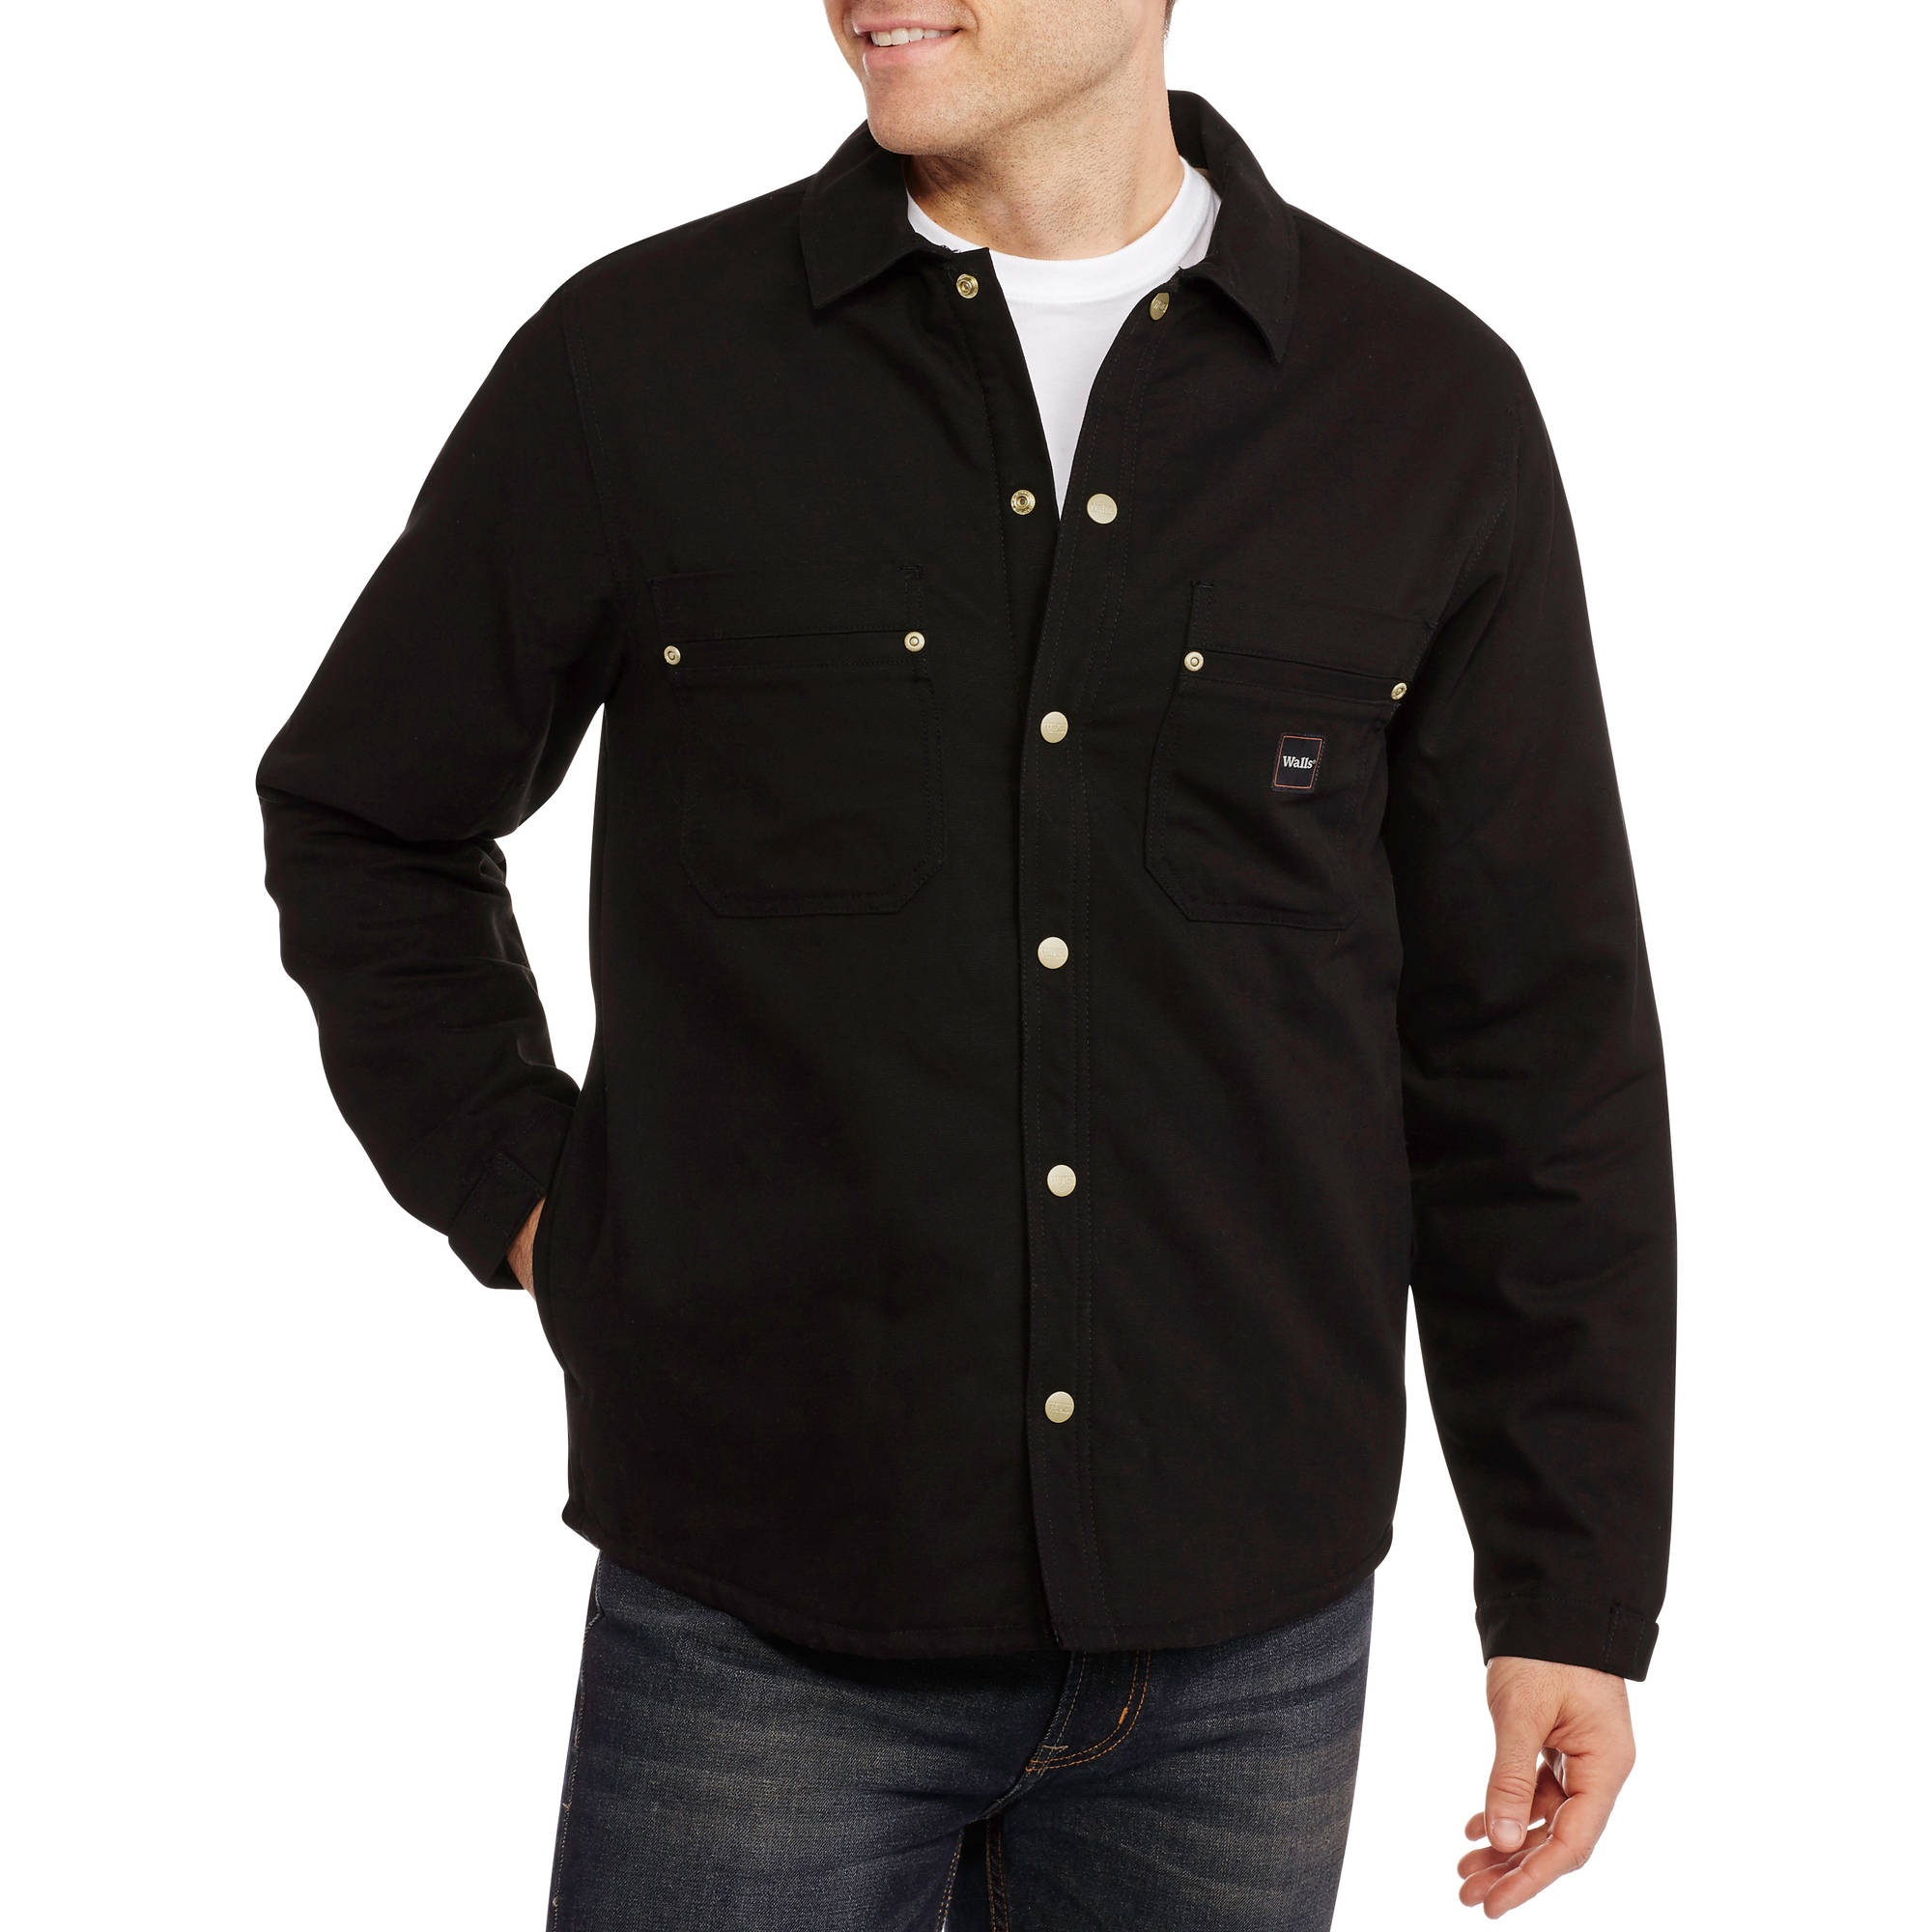 Walls Big Men's Sherpa Lined Shirt Jacket